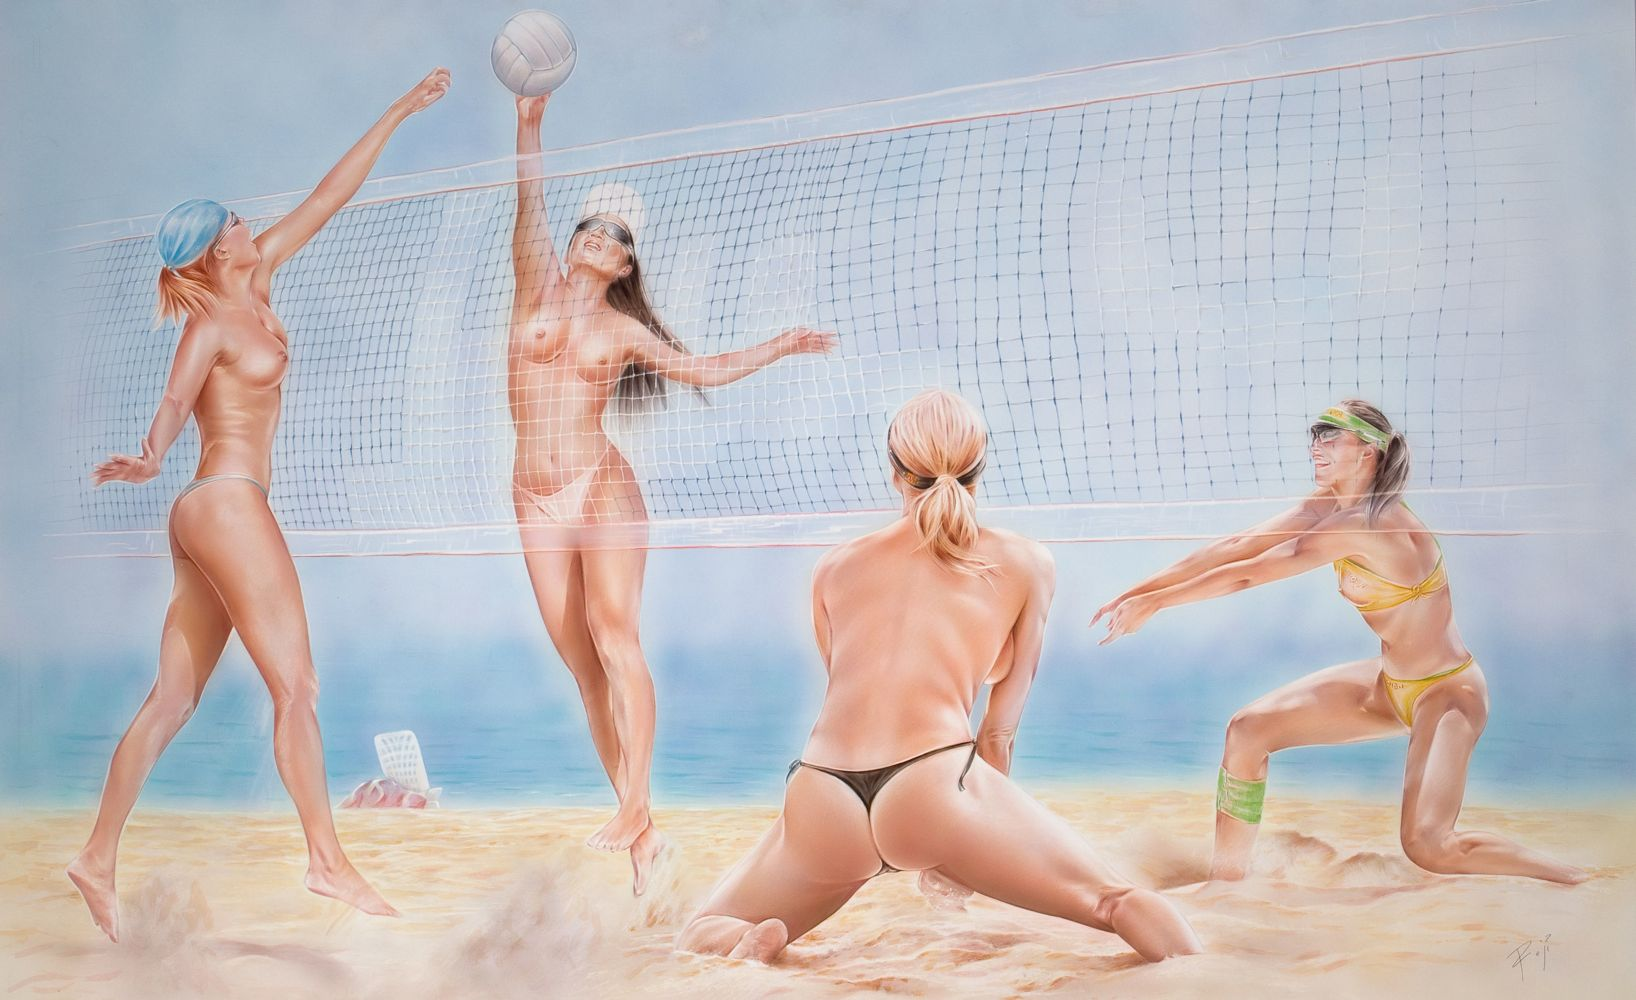 The Naked Girls of the USA Olympic Volleyball Team PHOTOS